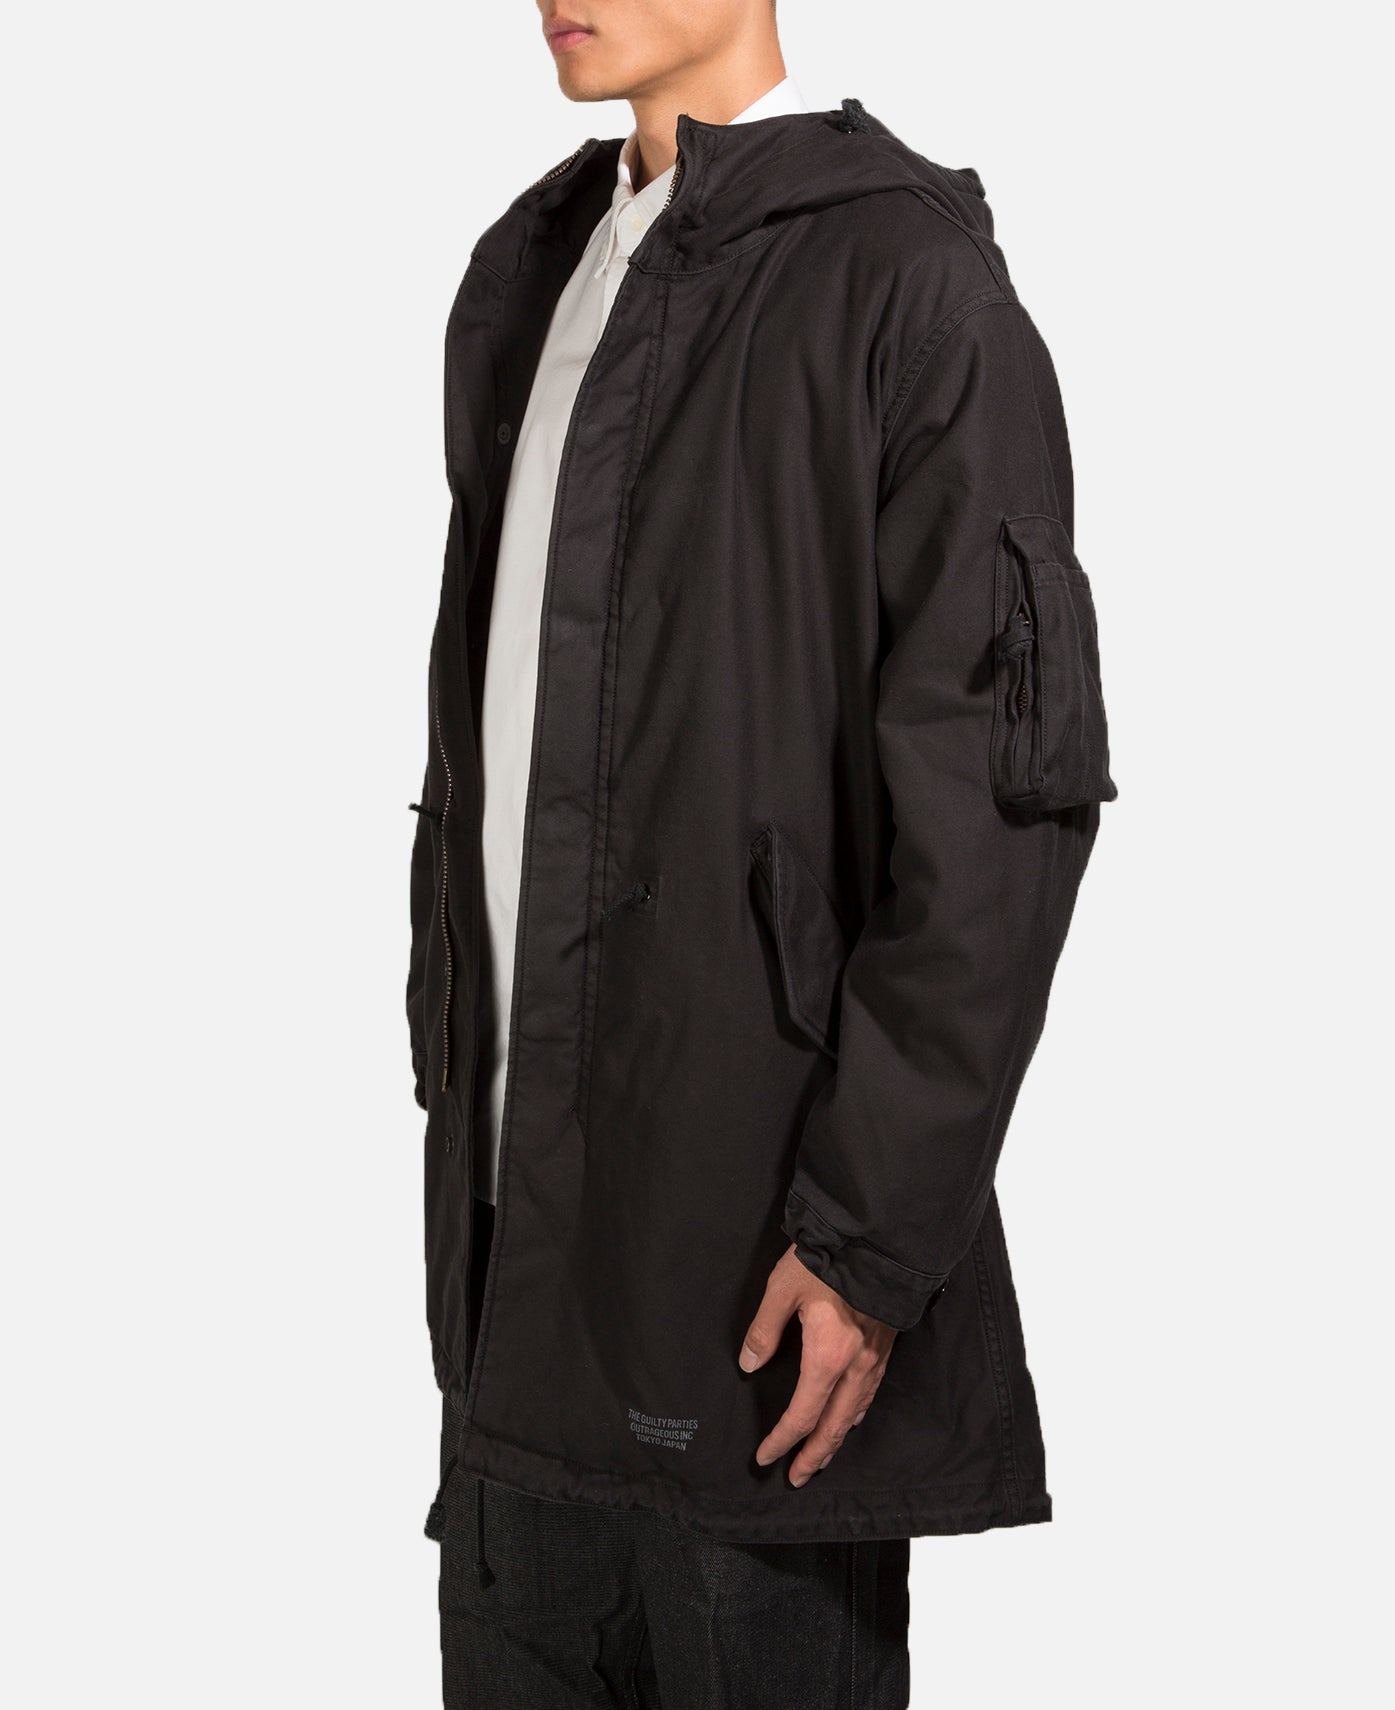 M-48 Mods Coat (Type-2)